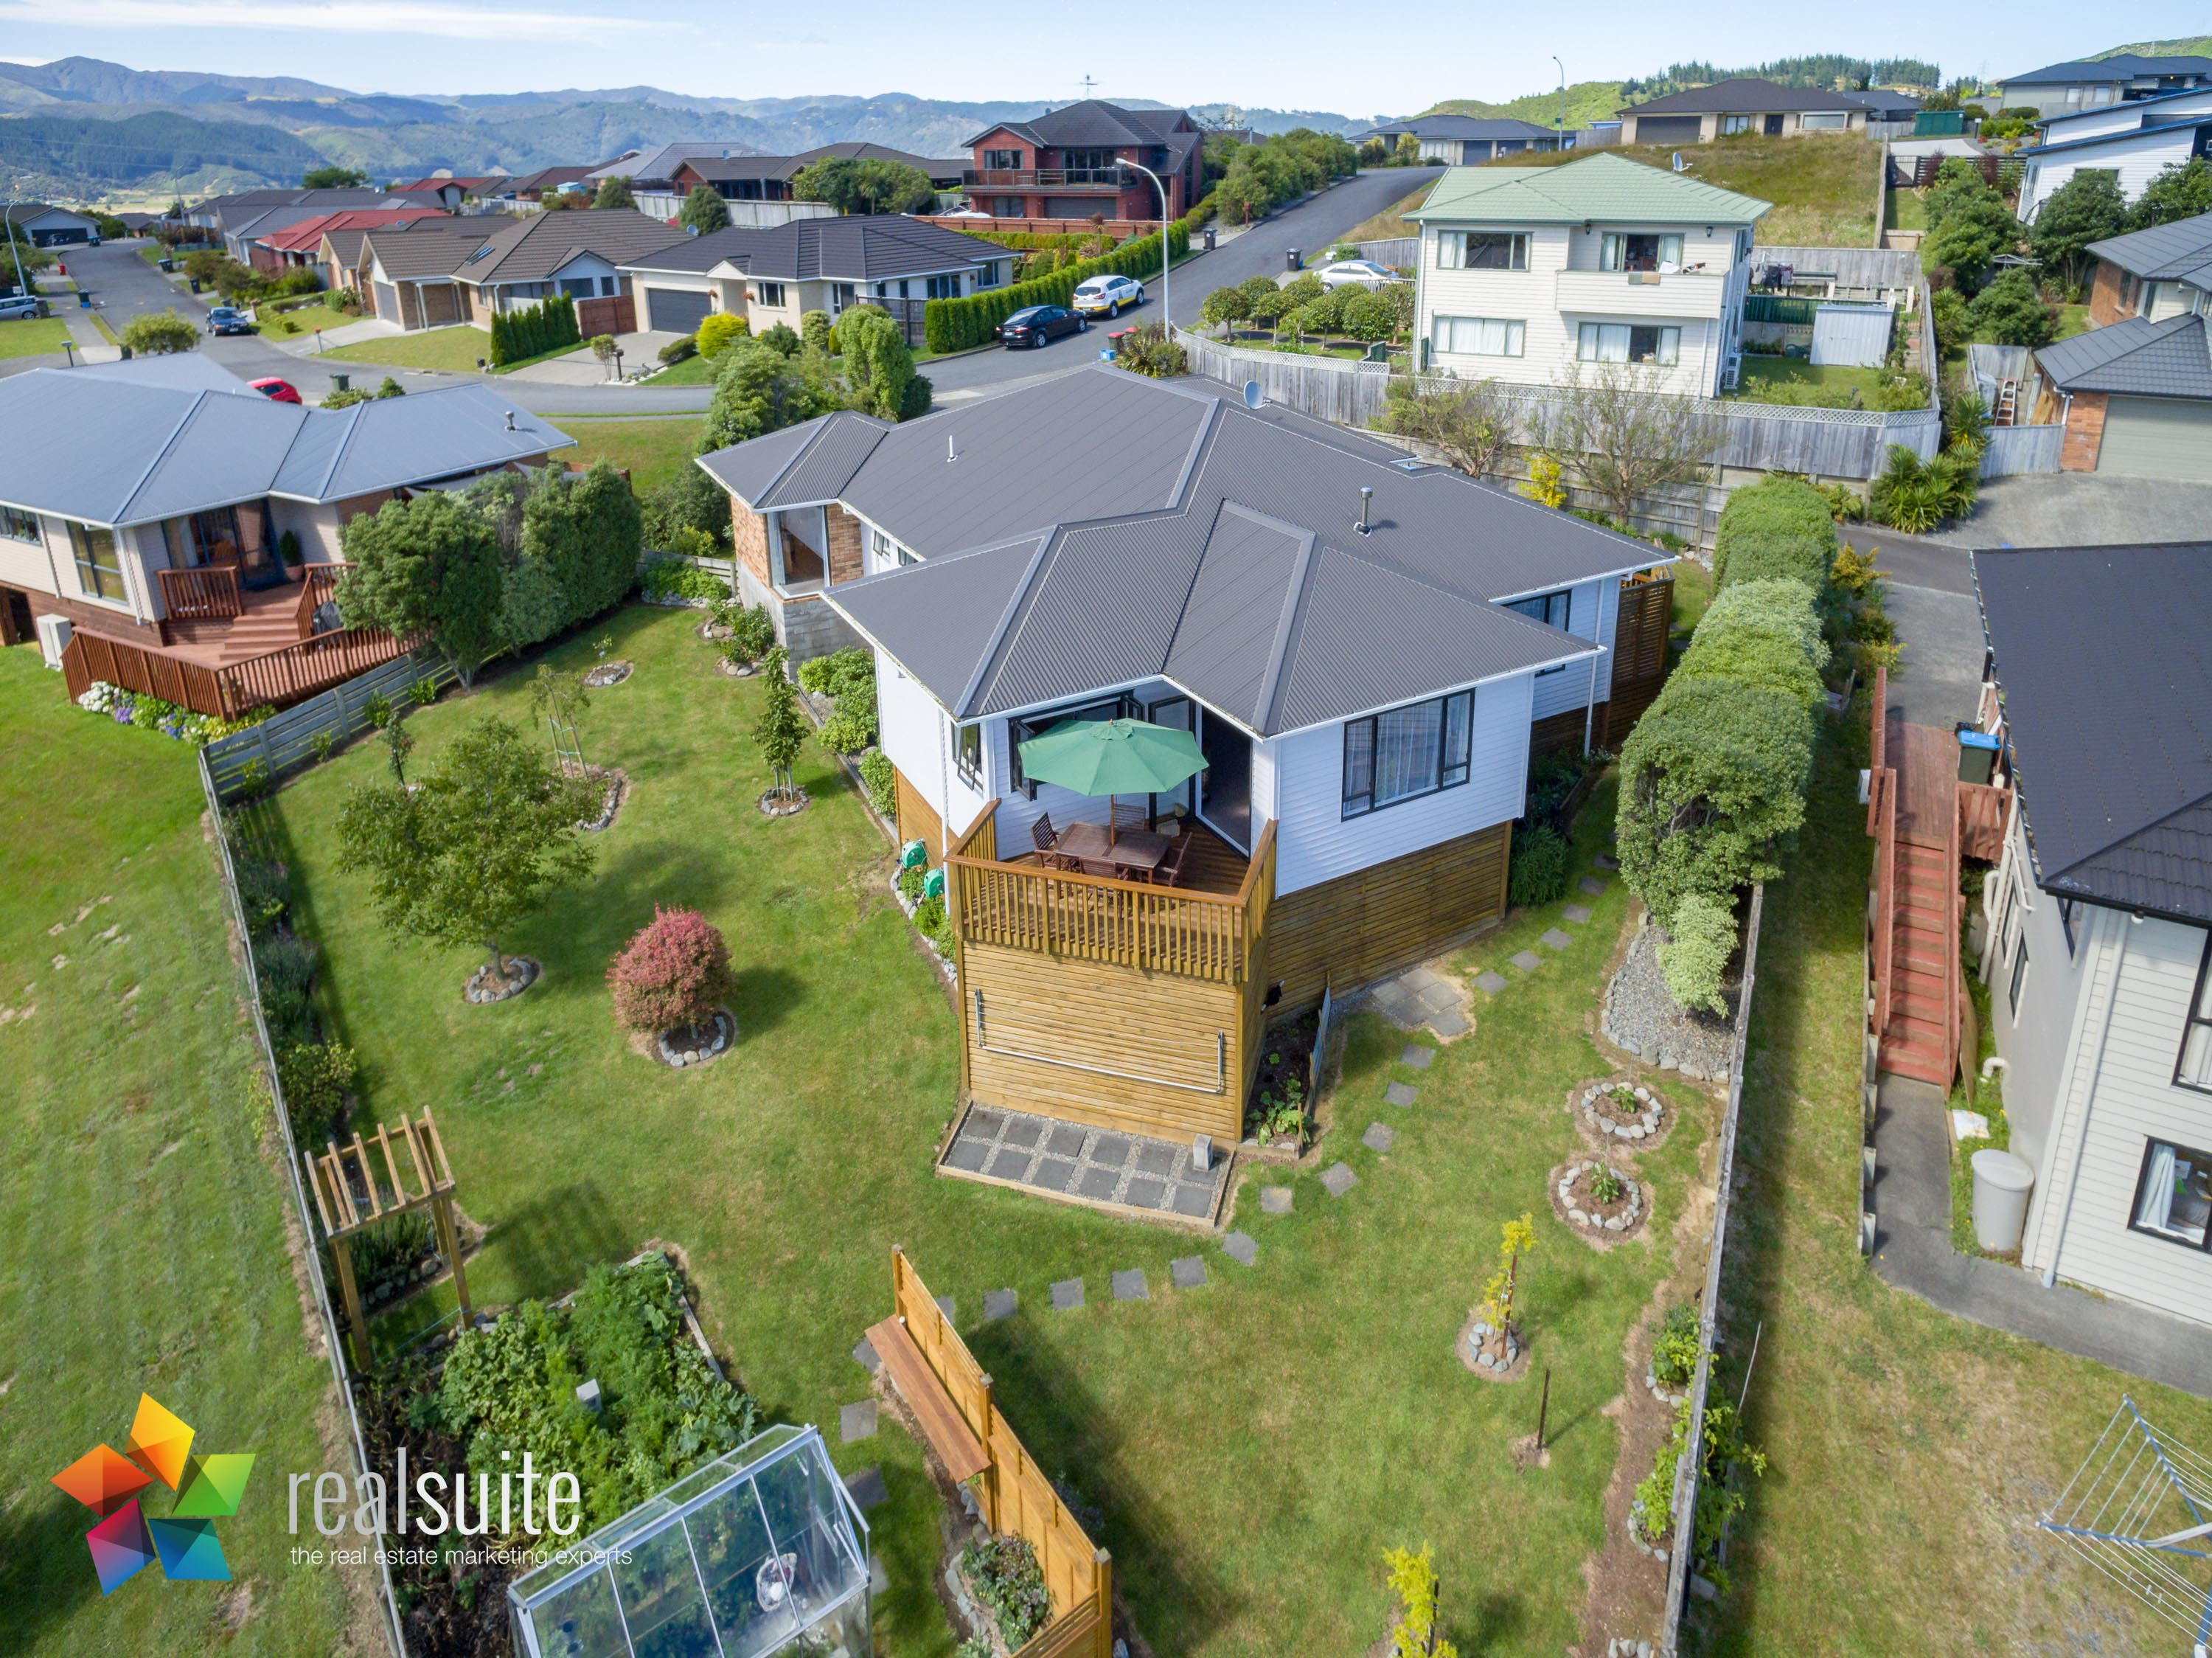 9 McEwen Crescent, Riverstone Terraces Aerial 0428